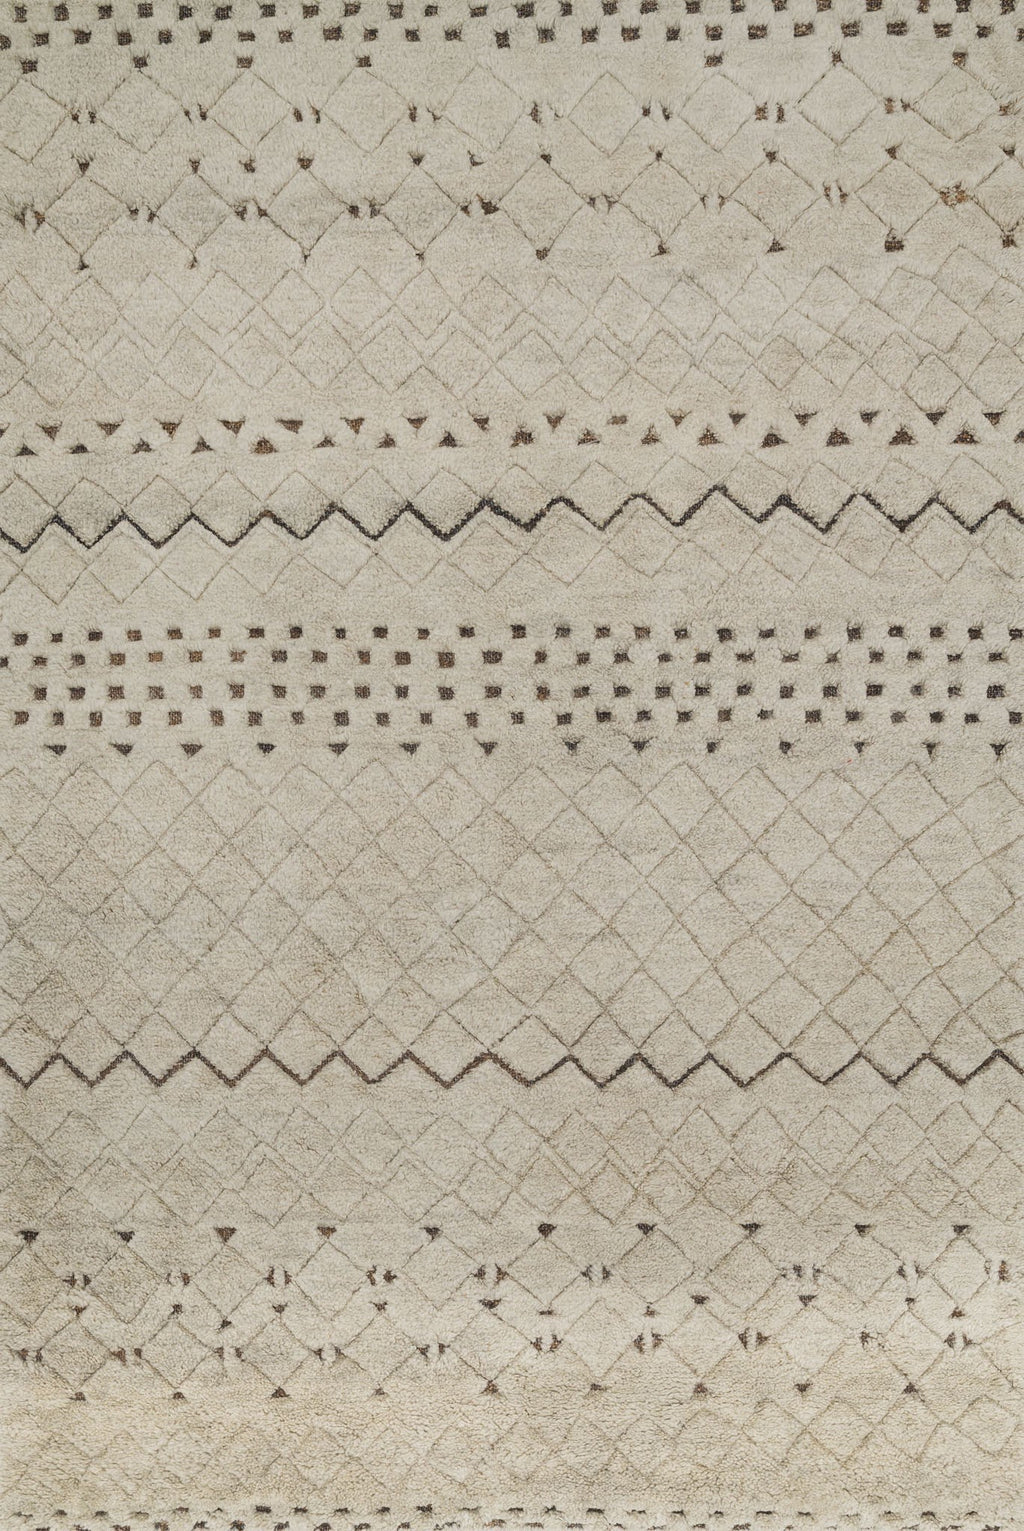 TANZANIA/HEMINGWAY Collection Rug  in  SAND Beige Small Hand-Knotted Jute/Wool